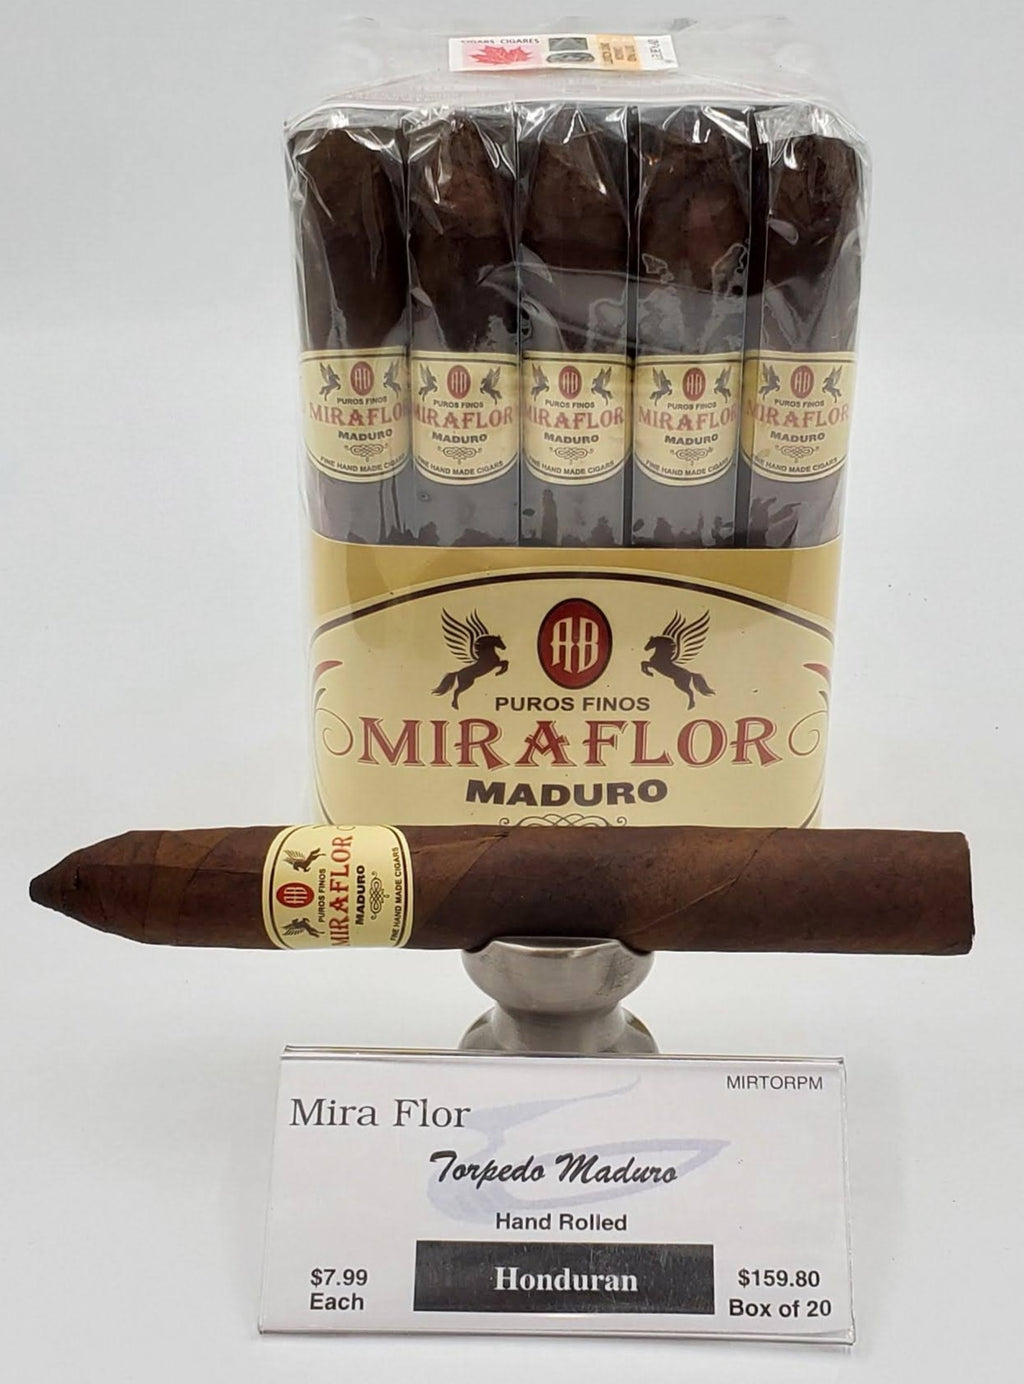 A Bundle of 20 Alec Bradley Mira Flor Torpedo Maduro. Pay ONLY $7.19 per Cigar. Sorry NOT eligible for FREE mail order shipping,Free Local Home Delivery available.